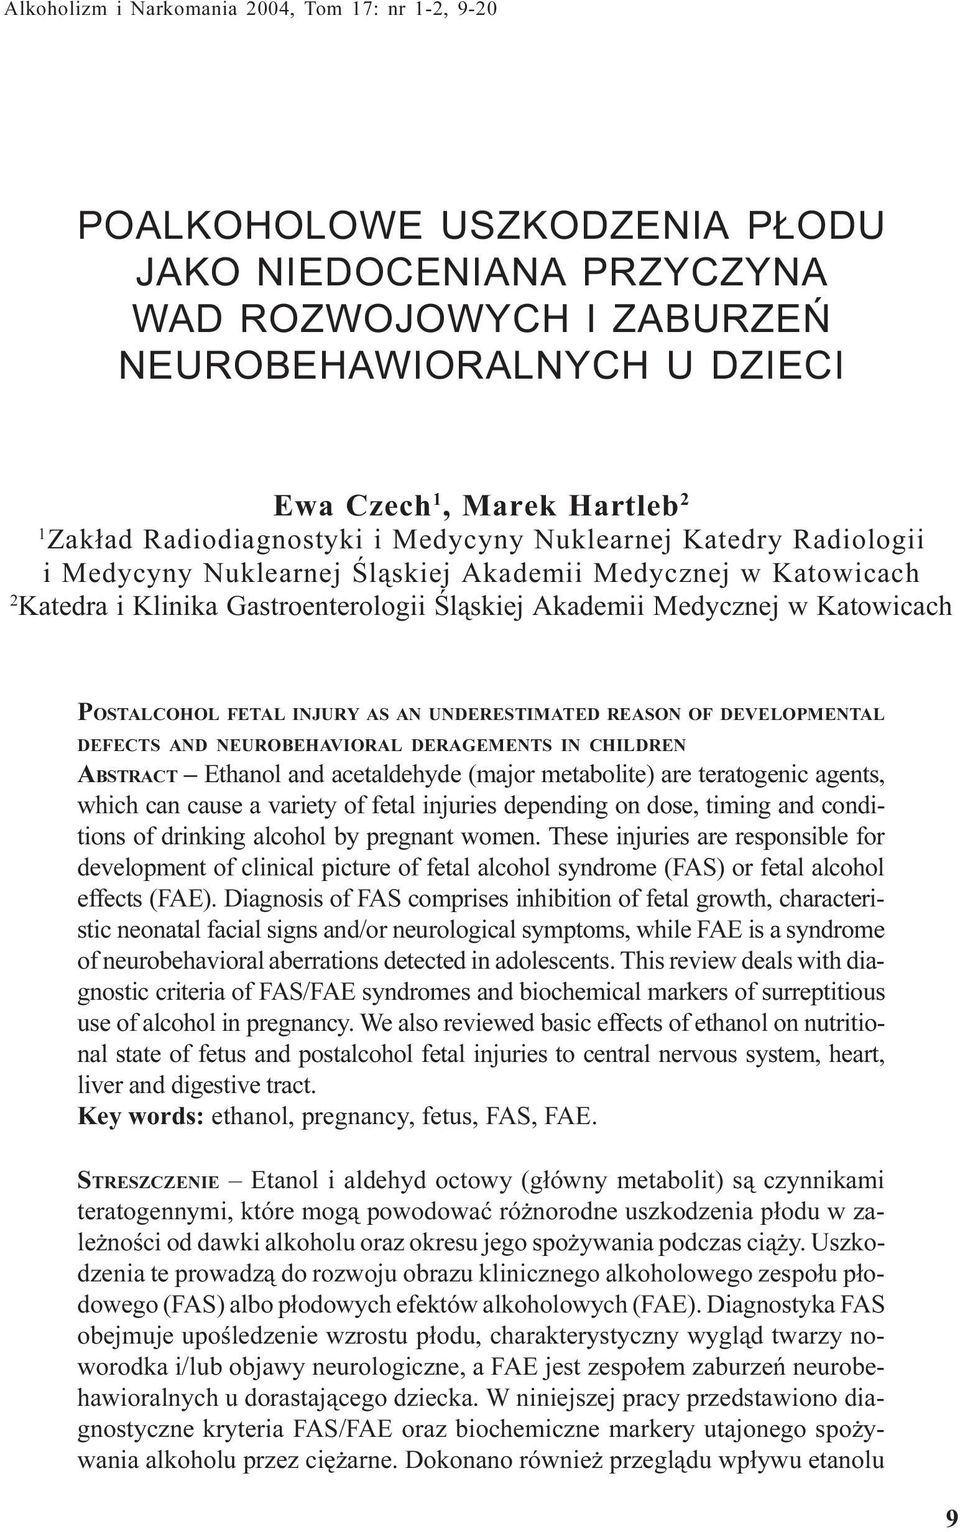 Katowicach POSTALCOHOL FETAL INJURY AS AN UNDERESTIMATED REASON OF DEVELOPMENTAL DEFECTS AND NEUROBEHAVIORAL DERAGEMENTS IN CHILDREN ABSTRACT Ethanol and acetaldehyde (major metabolite) are